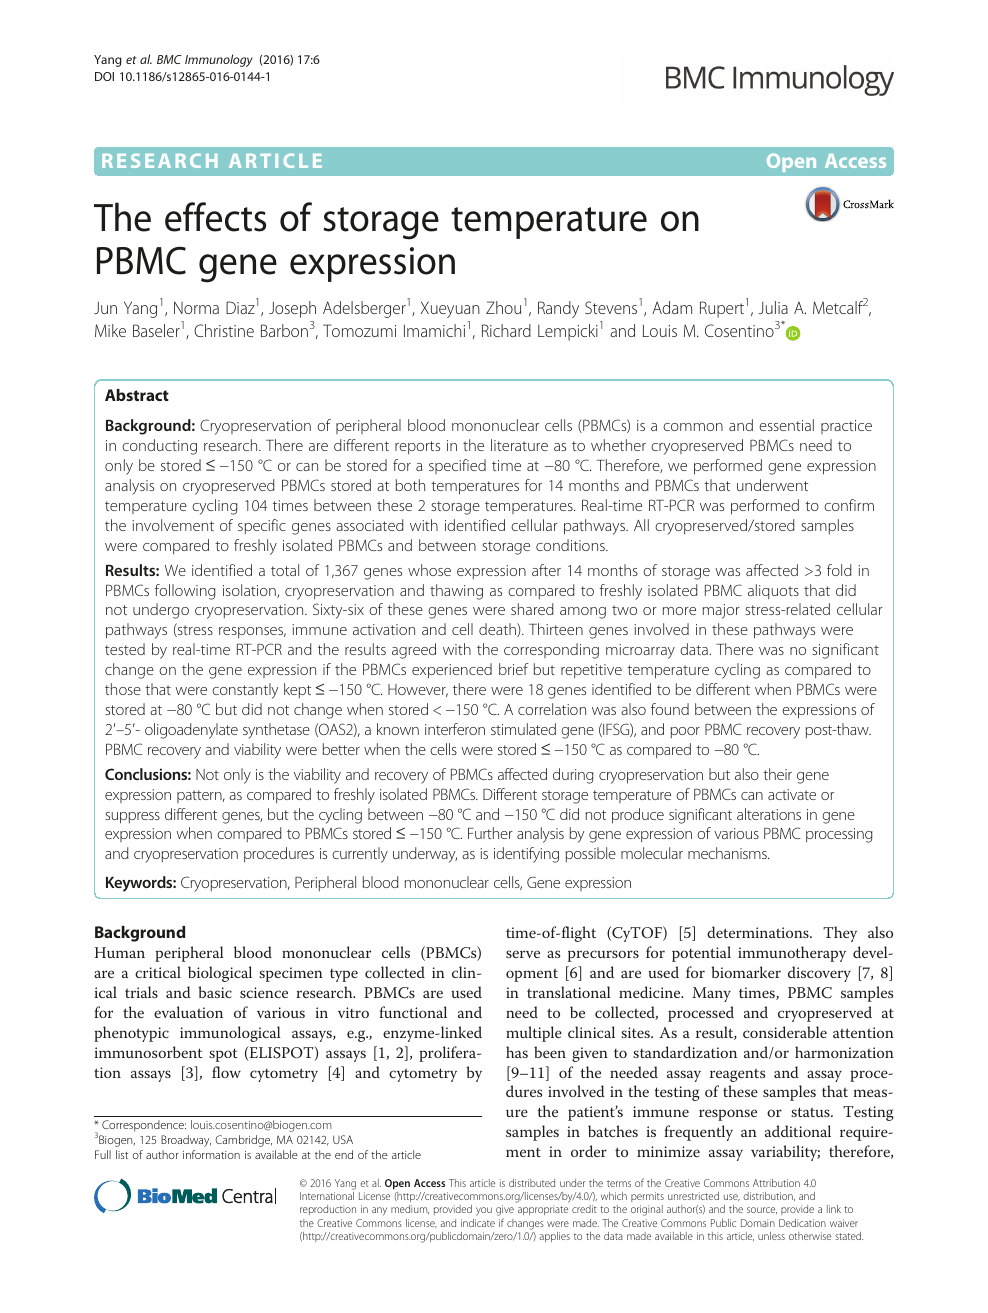 The effects of storage temperature on PBMC gene expression